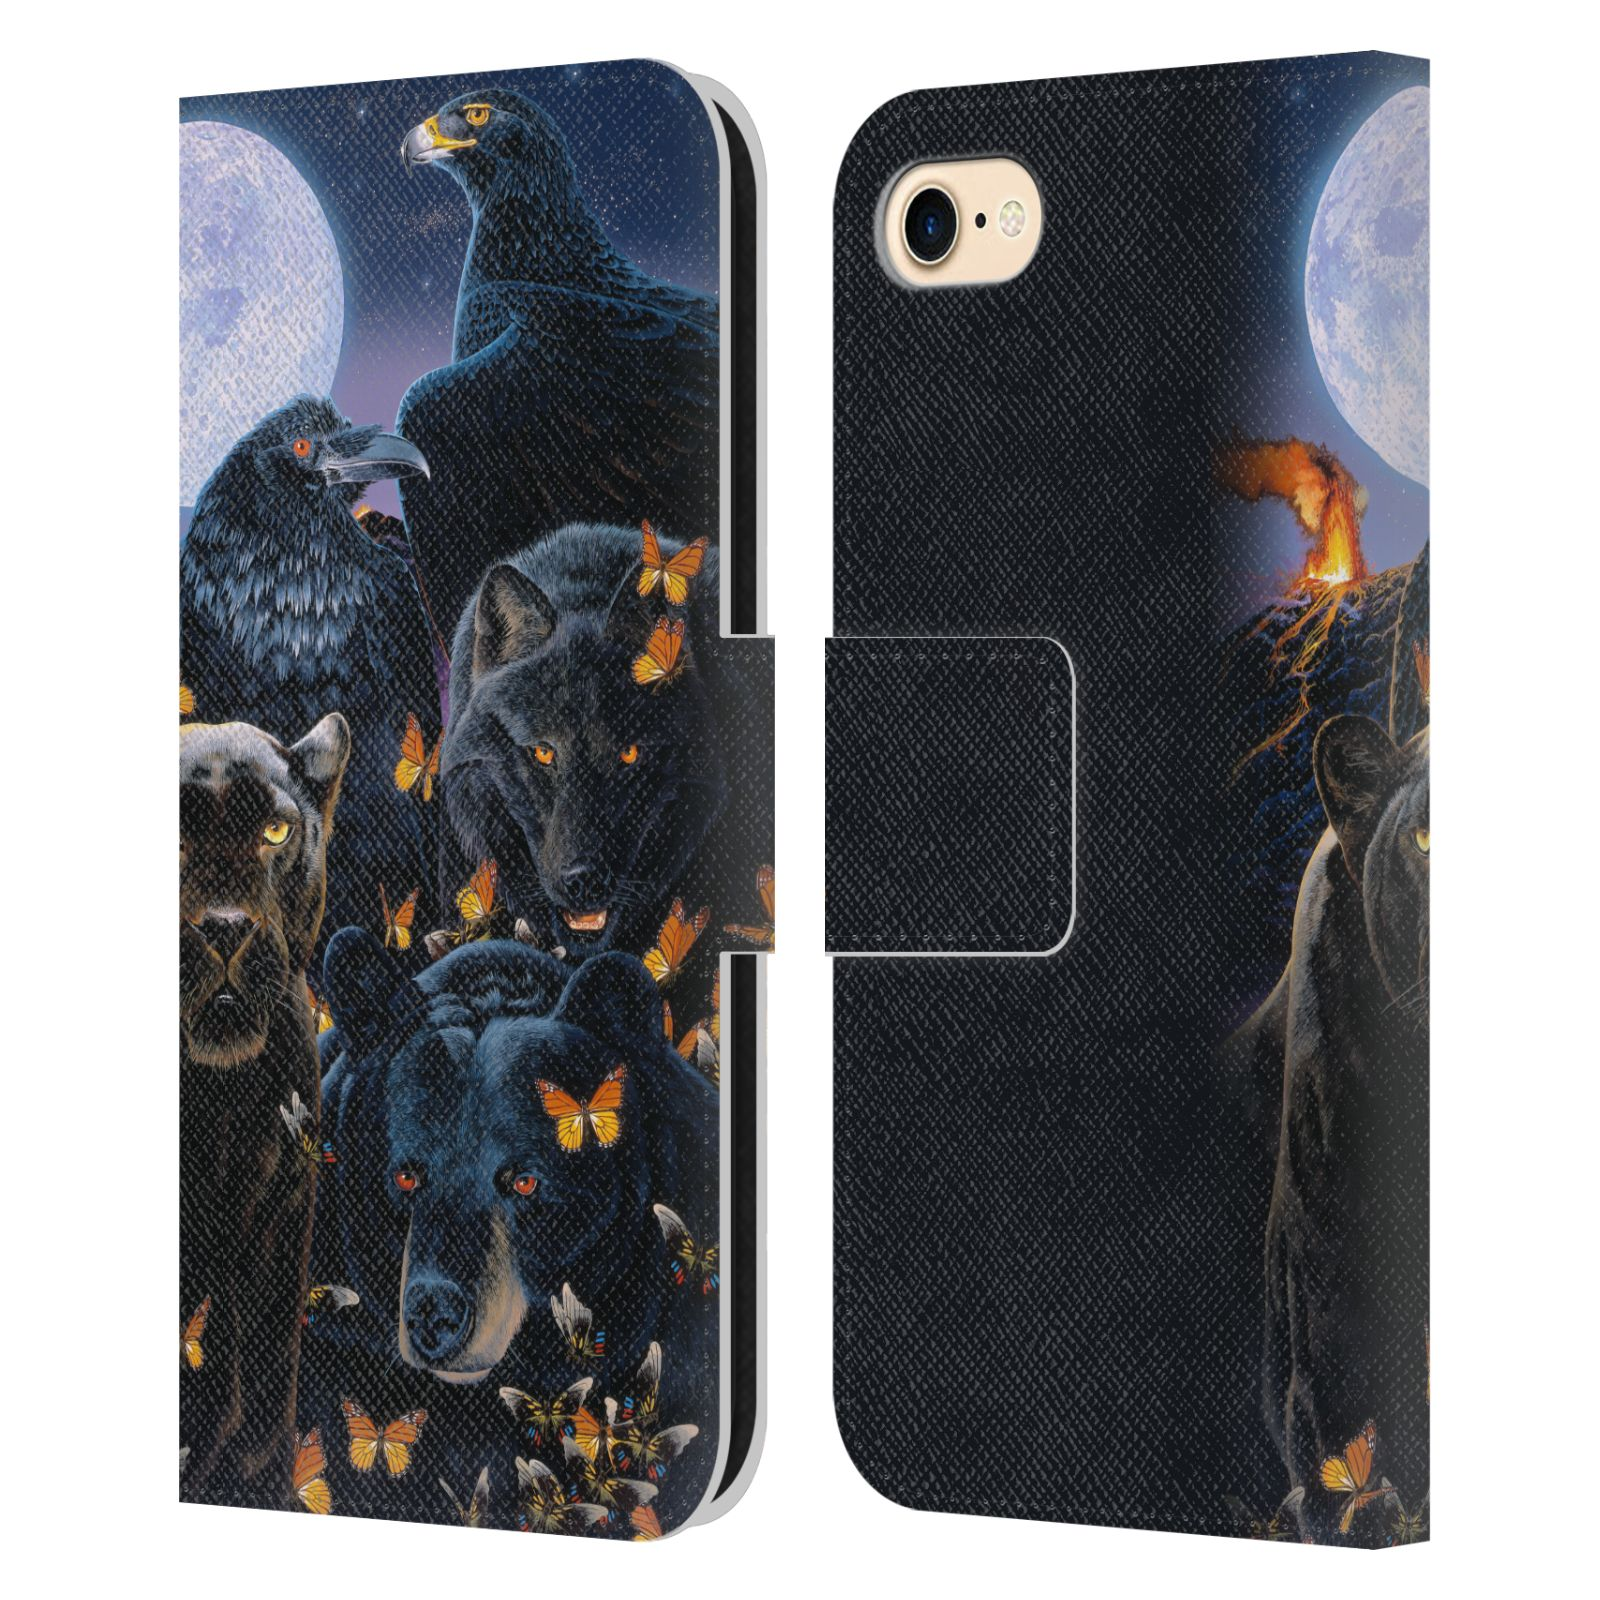 Official Graeme Stevenson Wildlife Black Animals 2 Leather Book Wallet Case For Apple iPhone 7 / 8 / iPhone SE 2020